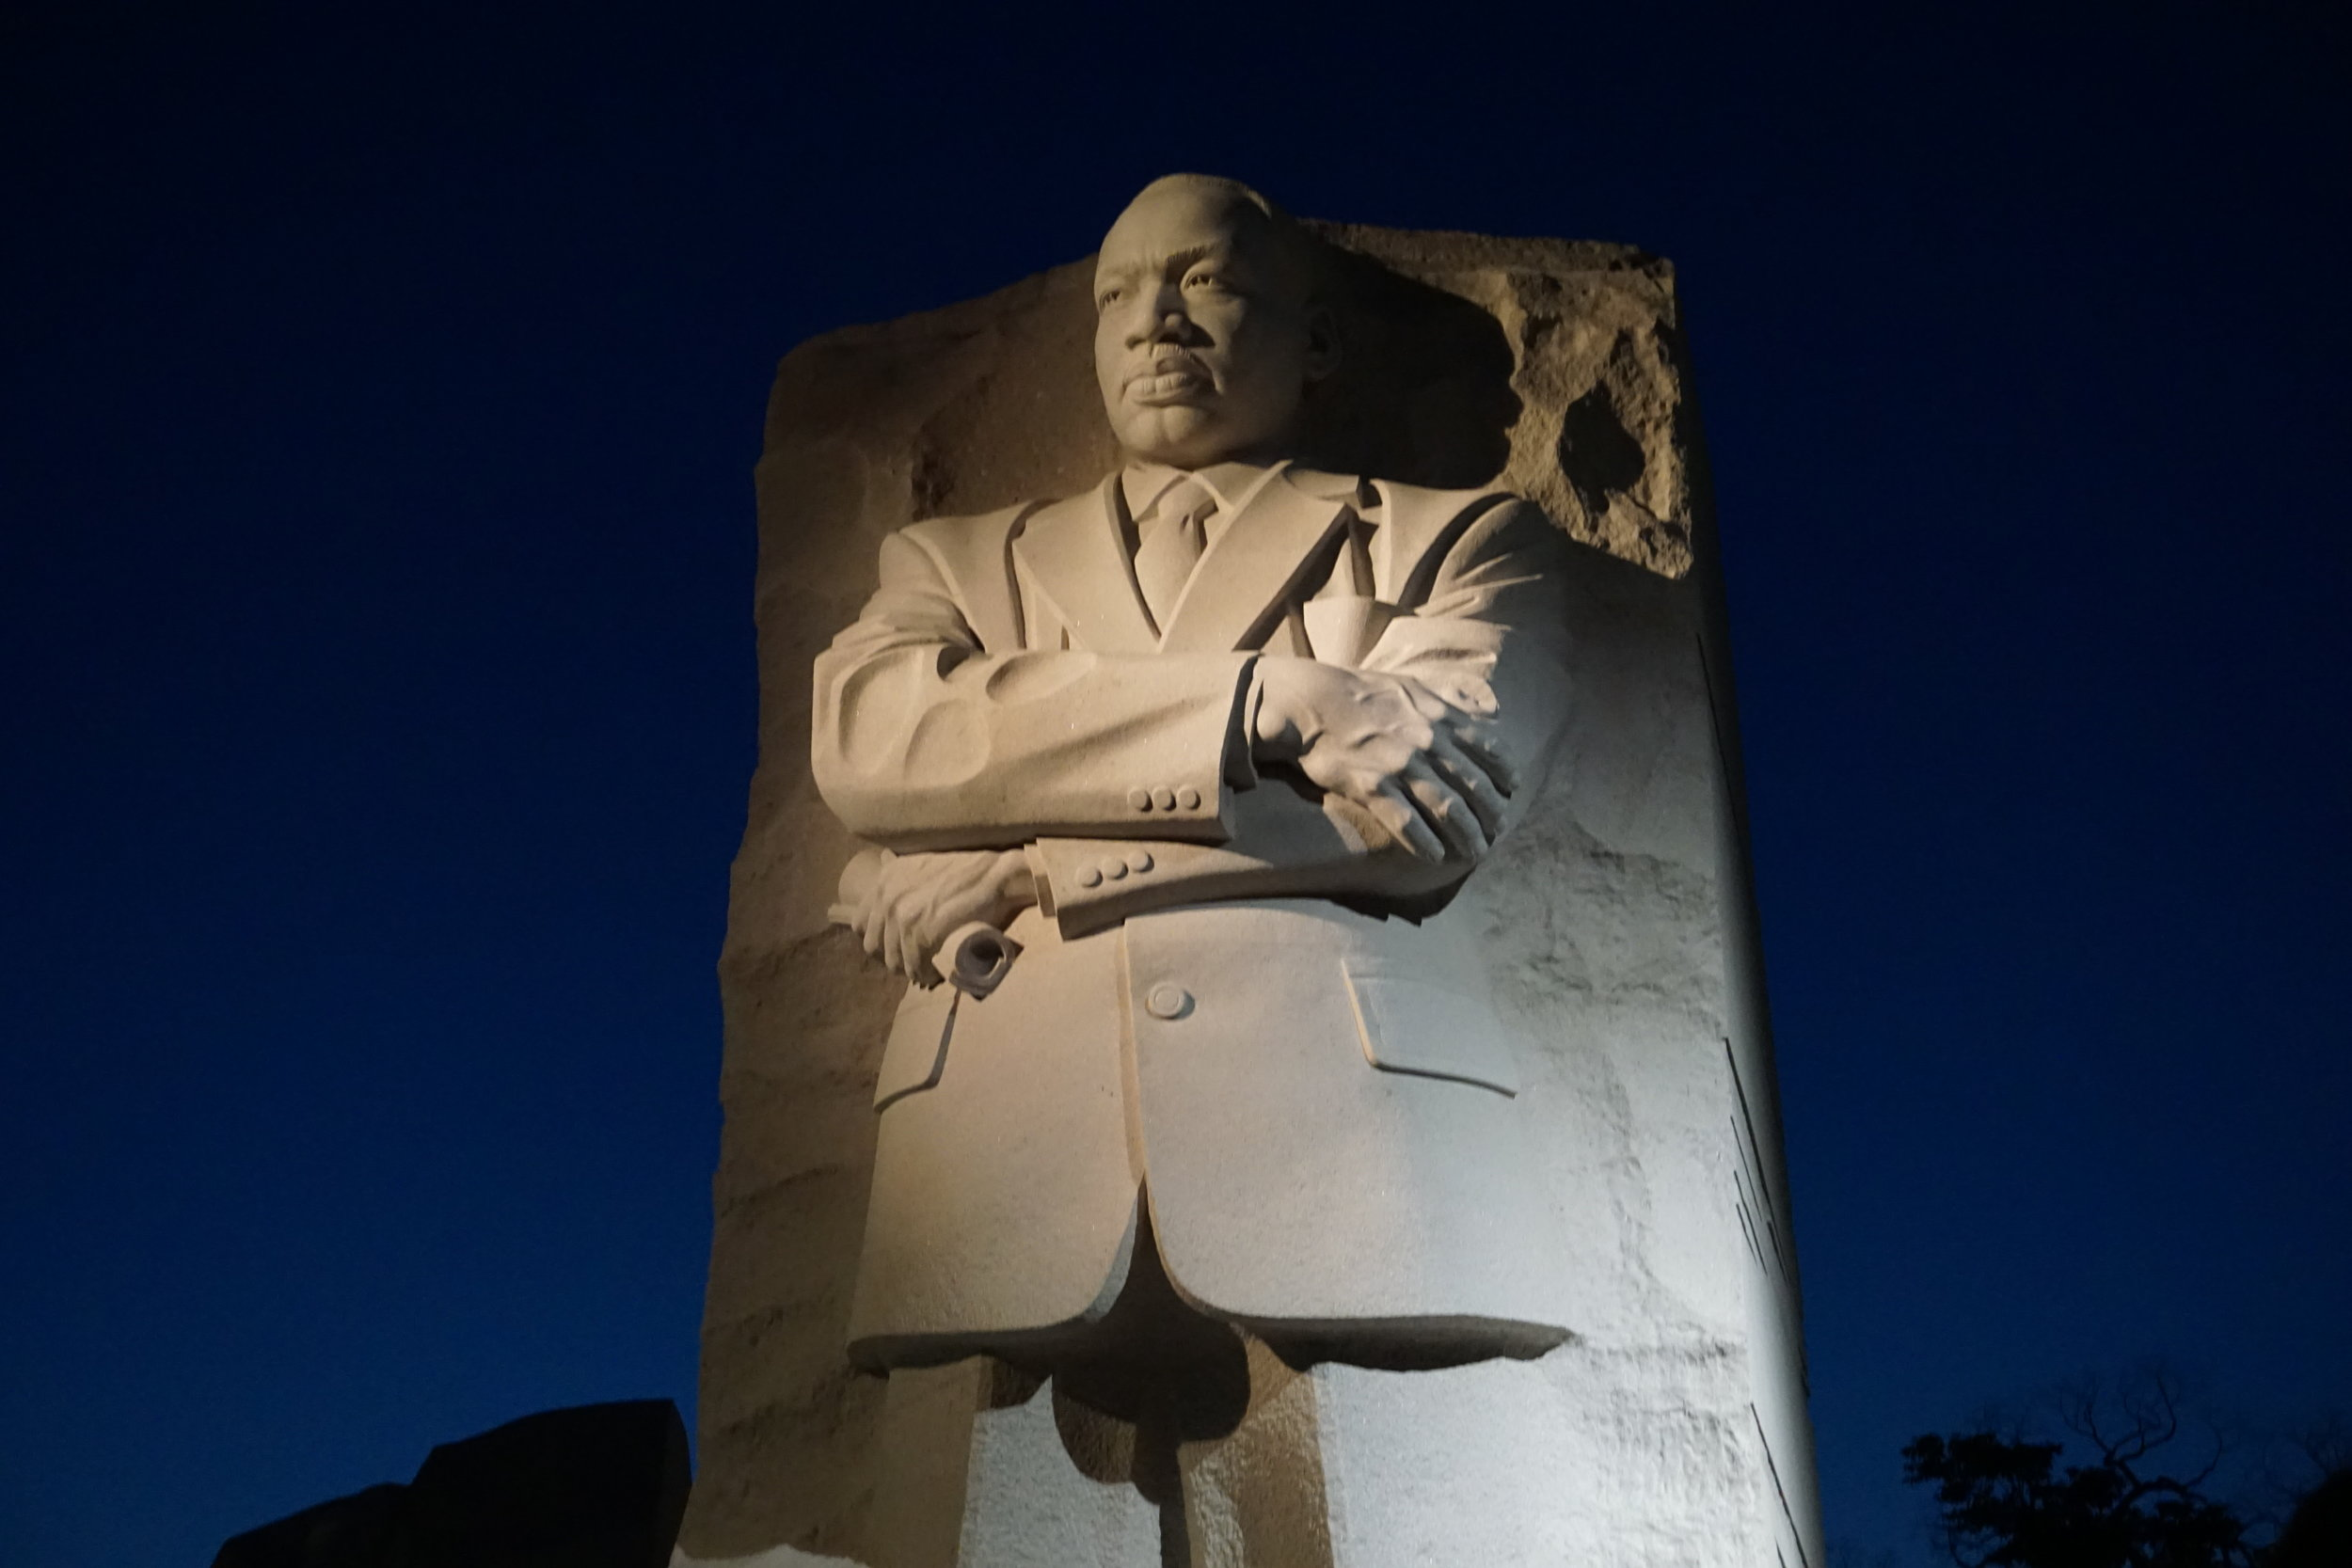 Martin Luther King, Jr. Memorial at night, Washington DC